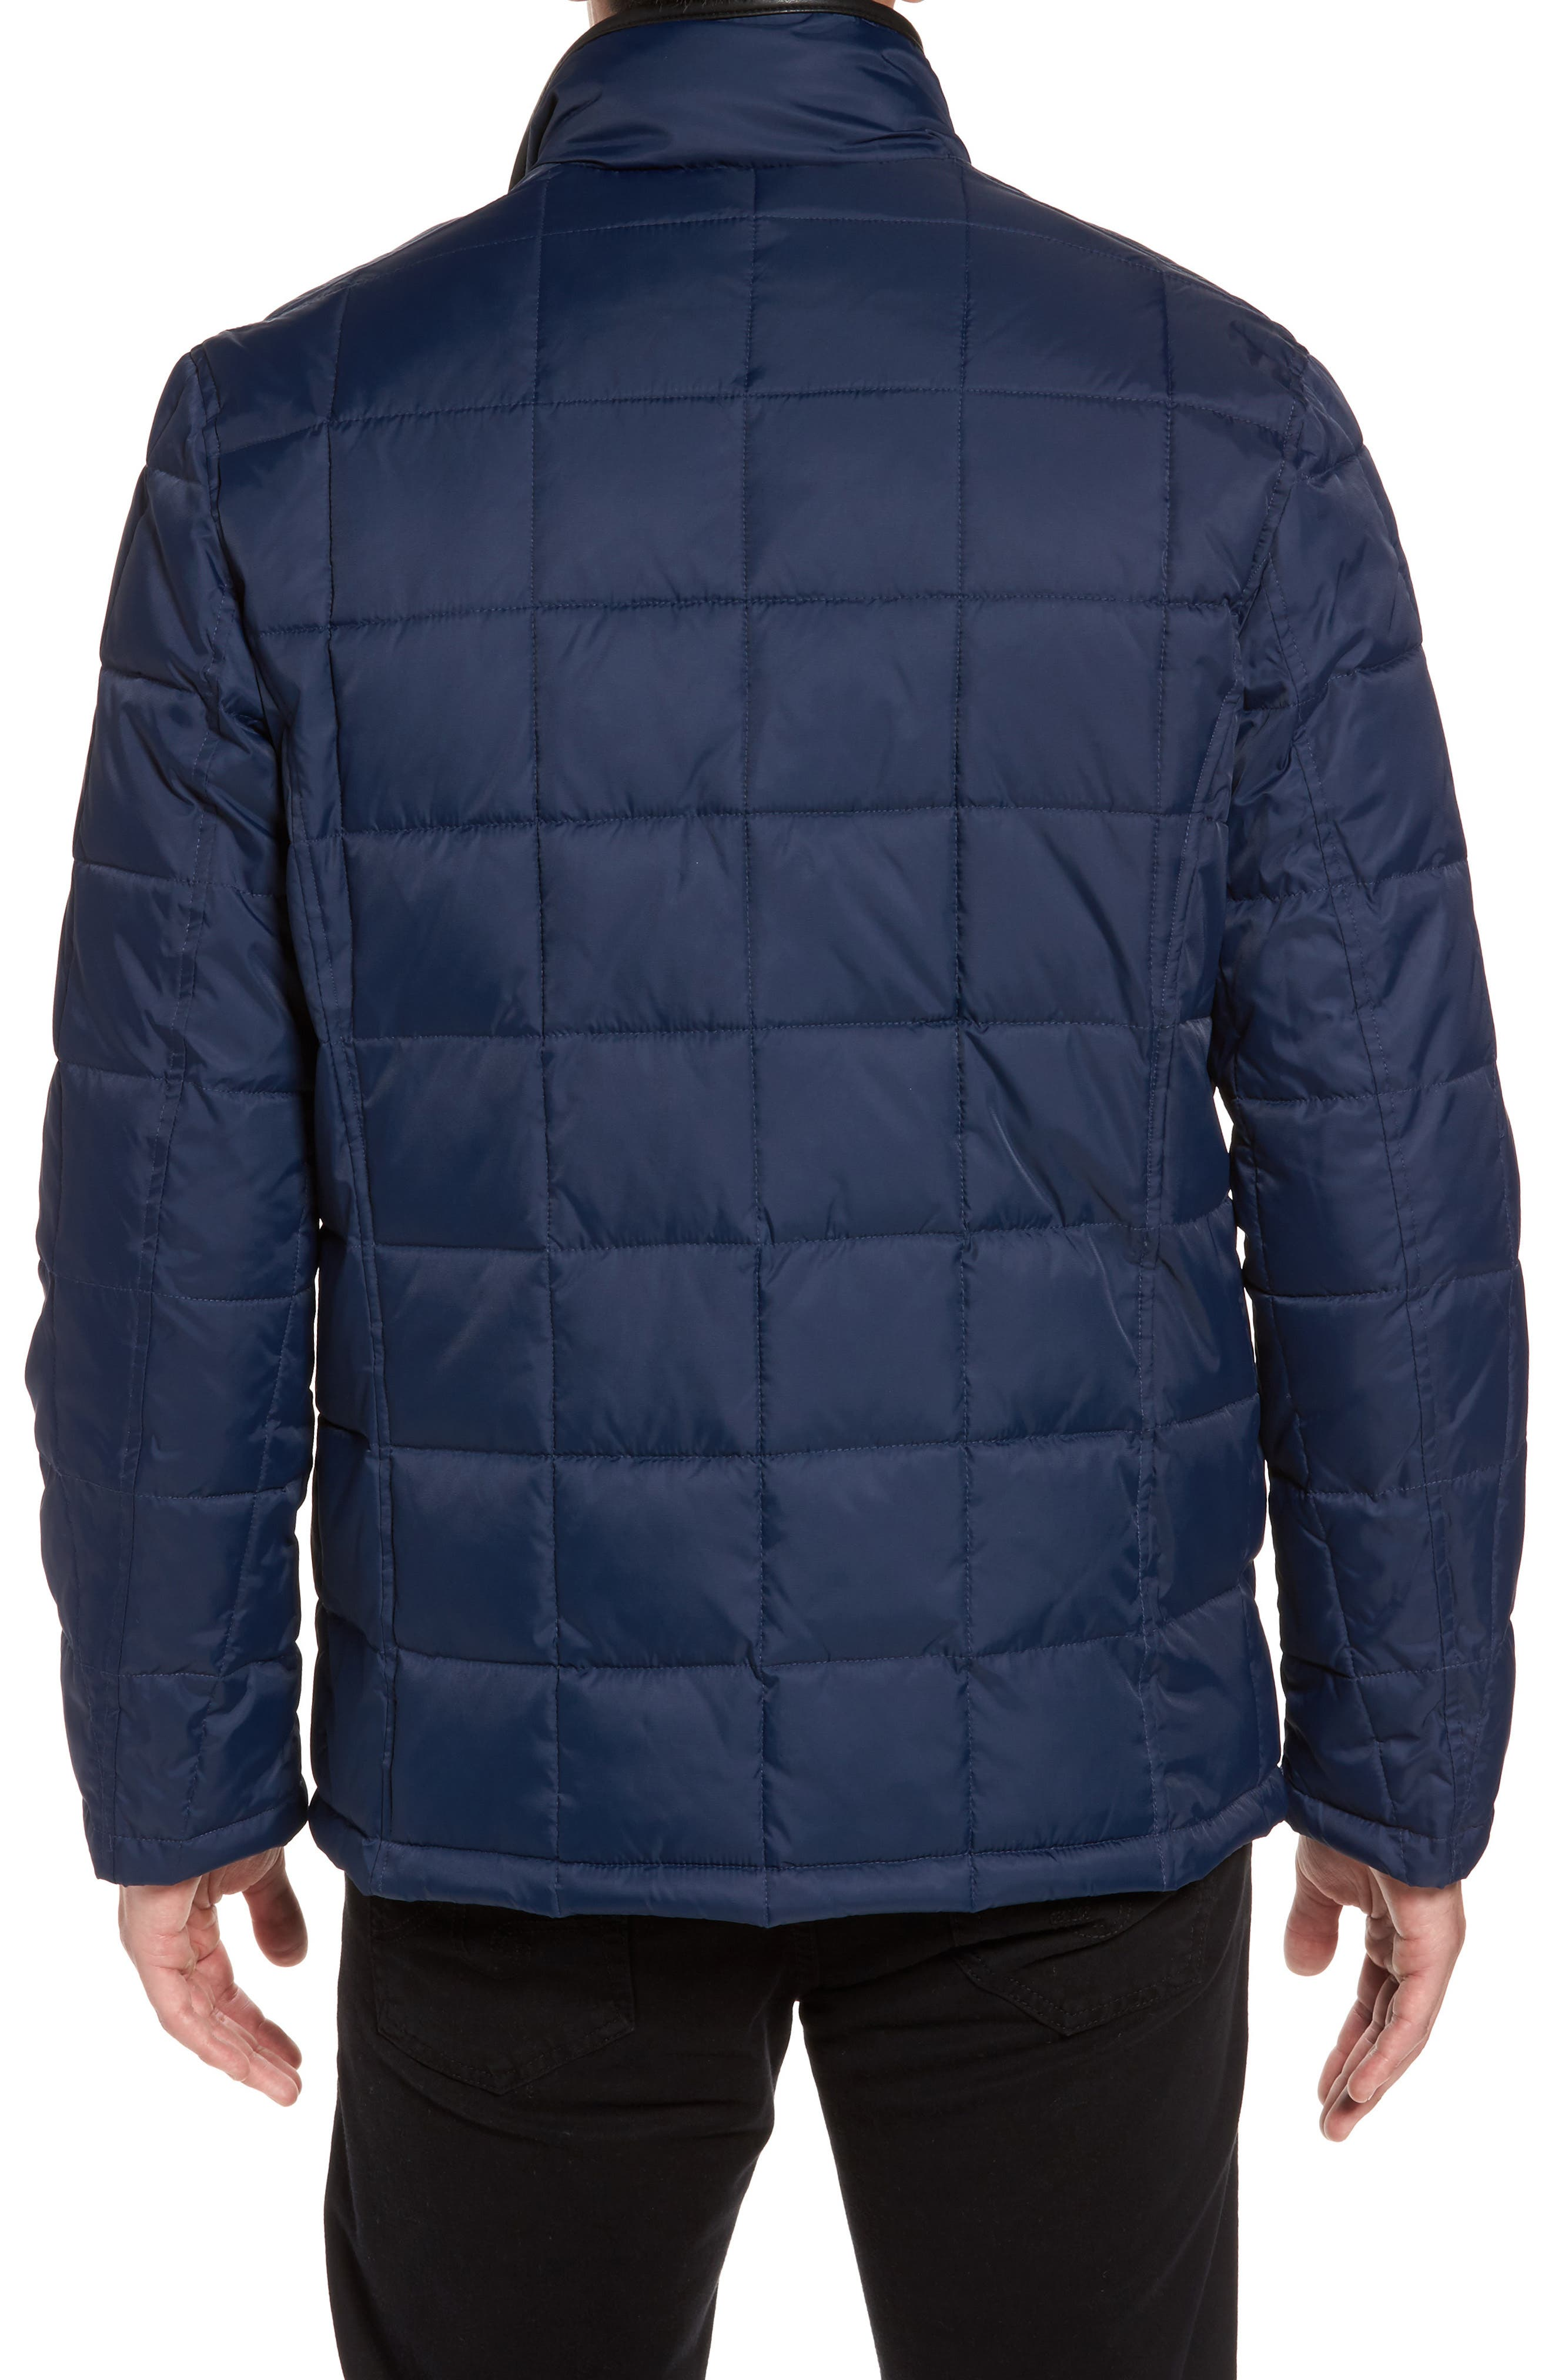 Box Quilted Jacket,                             Alternate thumbnail 2, color,                             NAVY